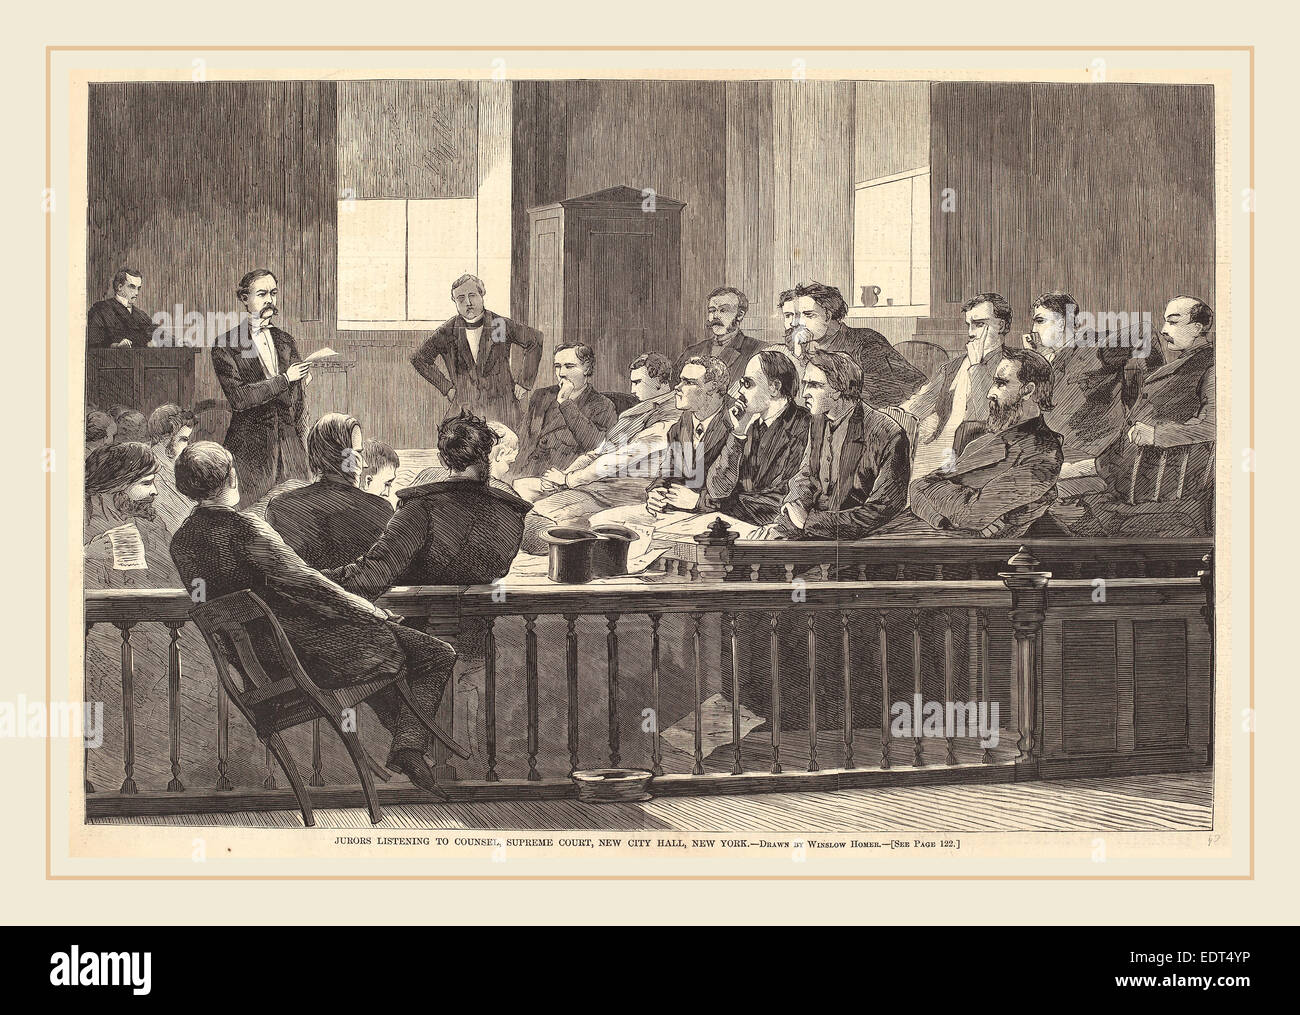 after Winslow Homer, Jurors Listening to Counsel, Supreme Court, New City Hall, New York, published 1869, wood engraving - Stock Image